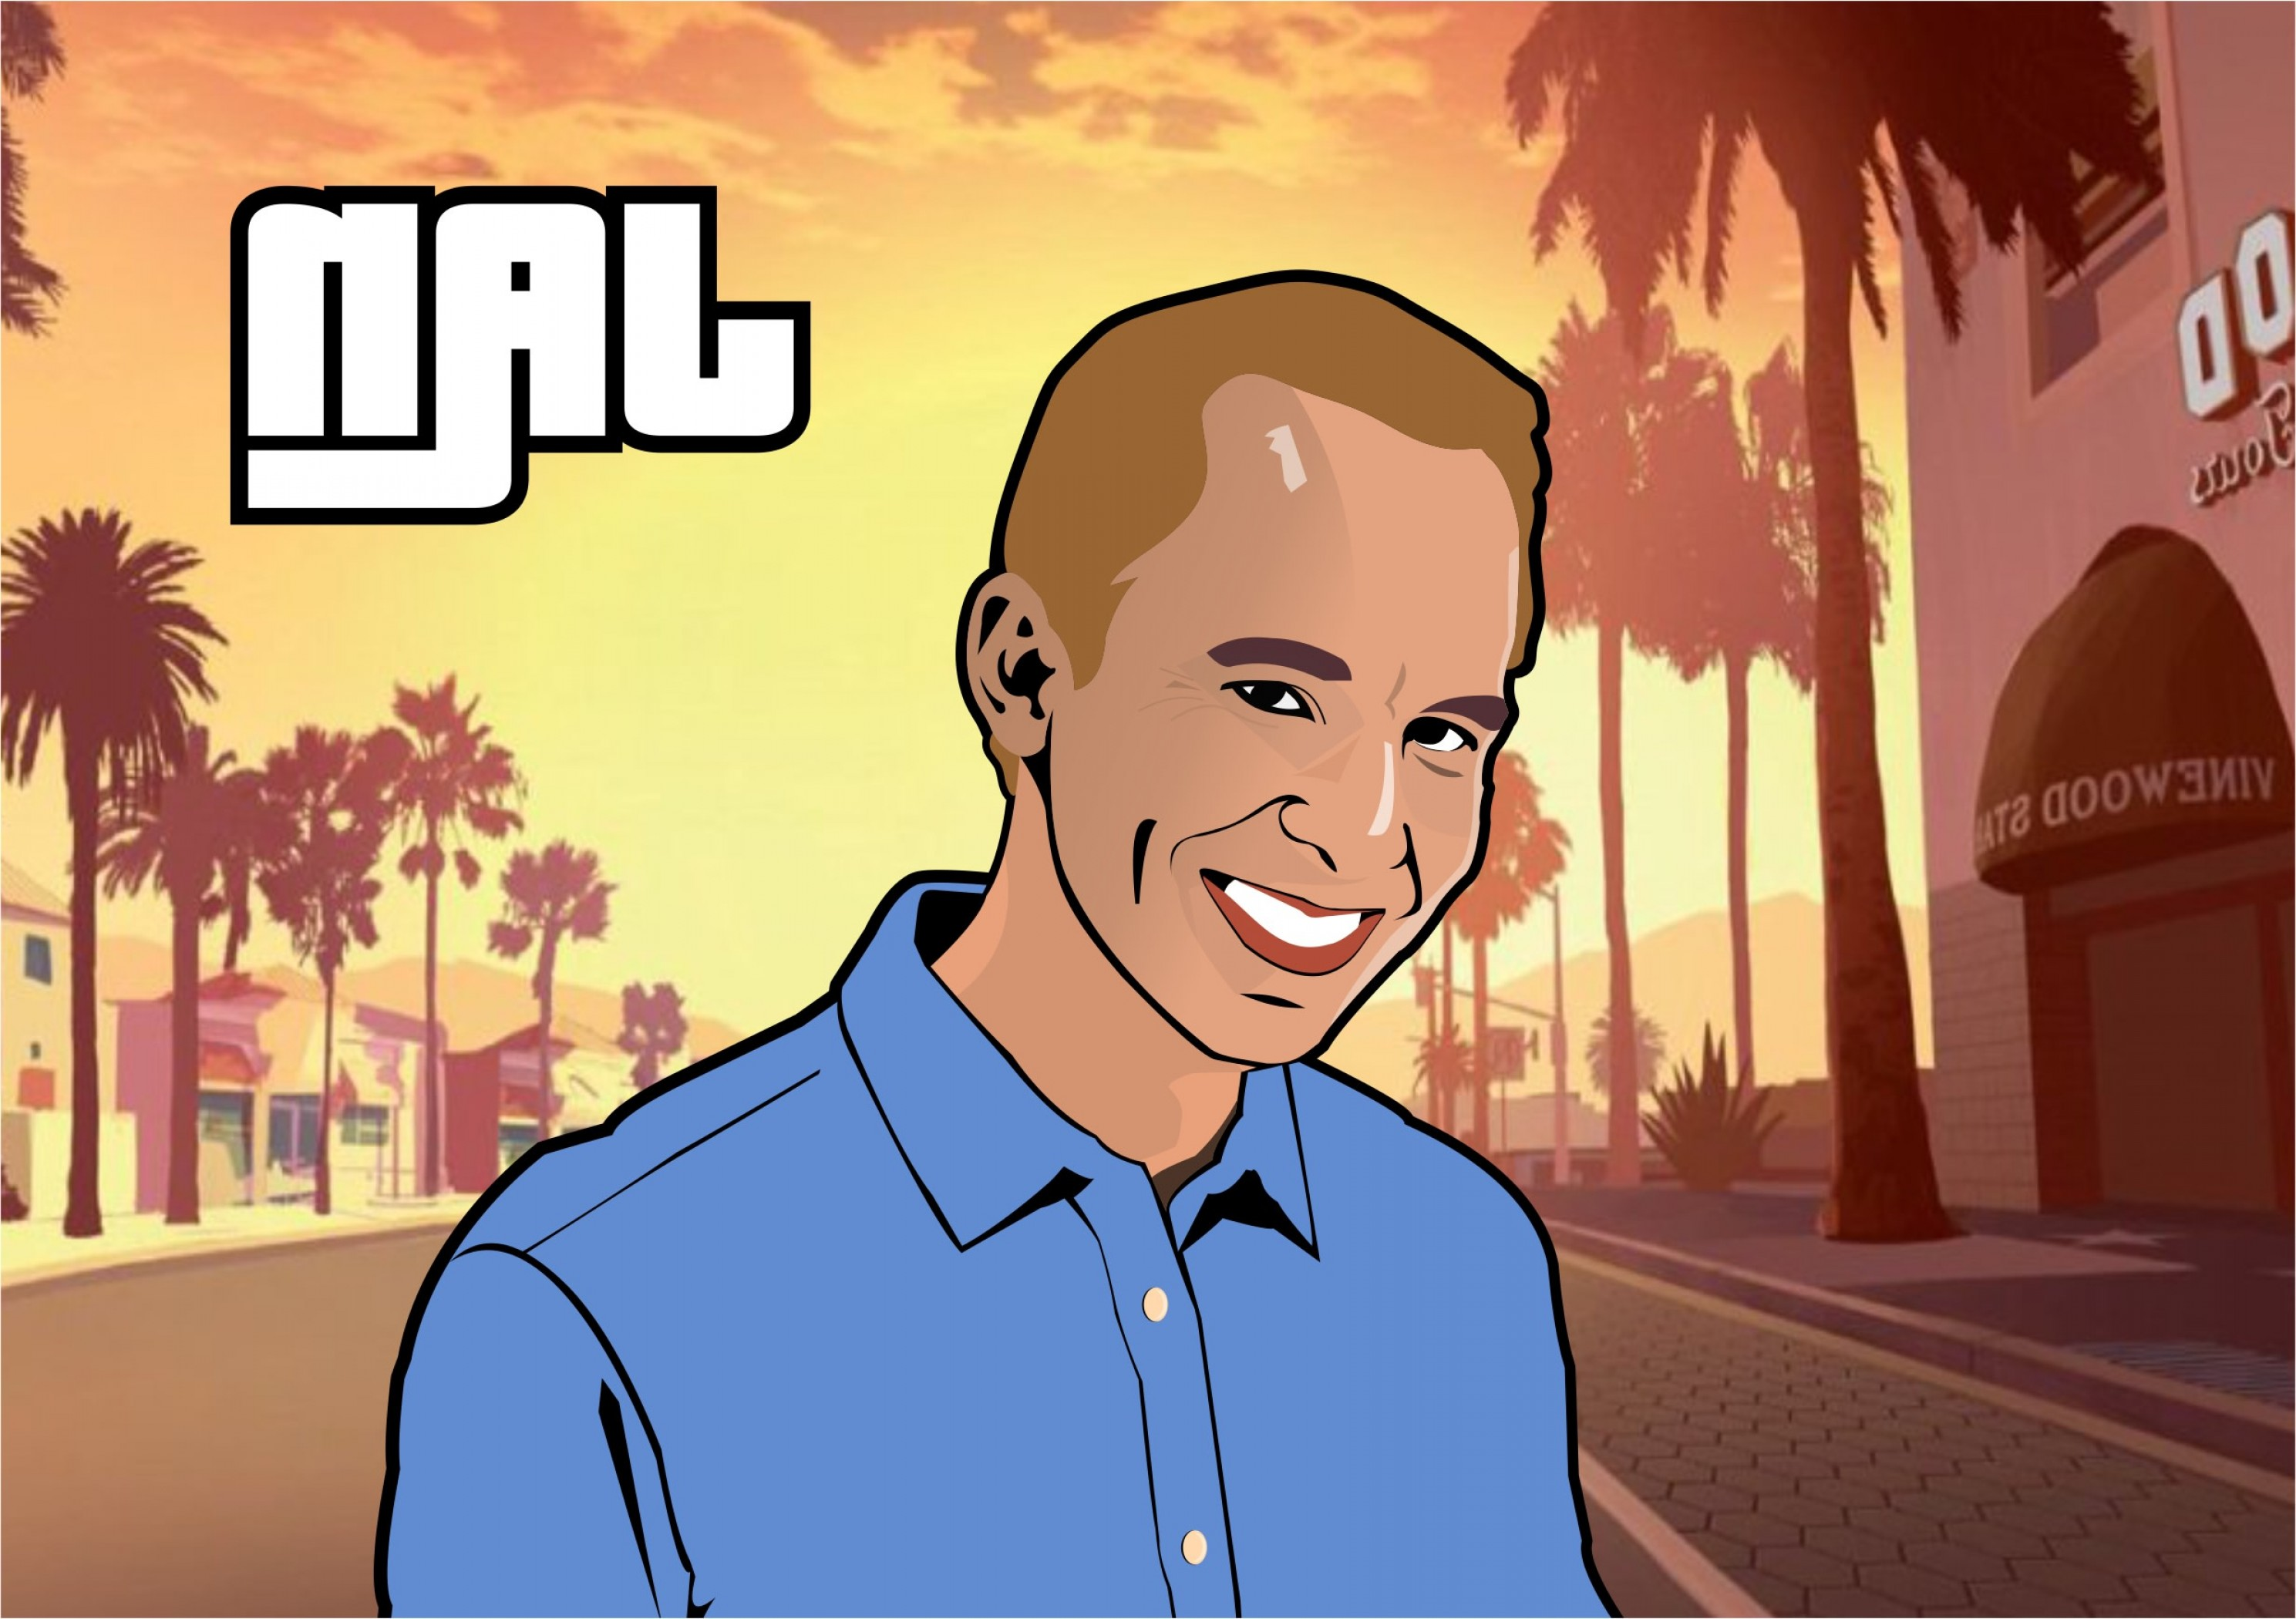 GTA Photo To Vector: Draw Vector Illustration Of Portrait In Gta Style